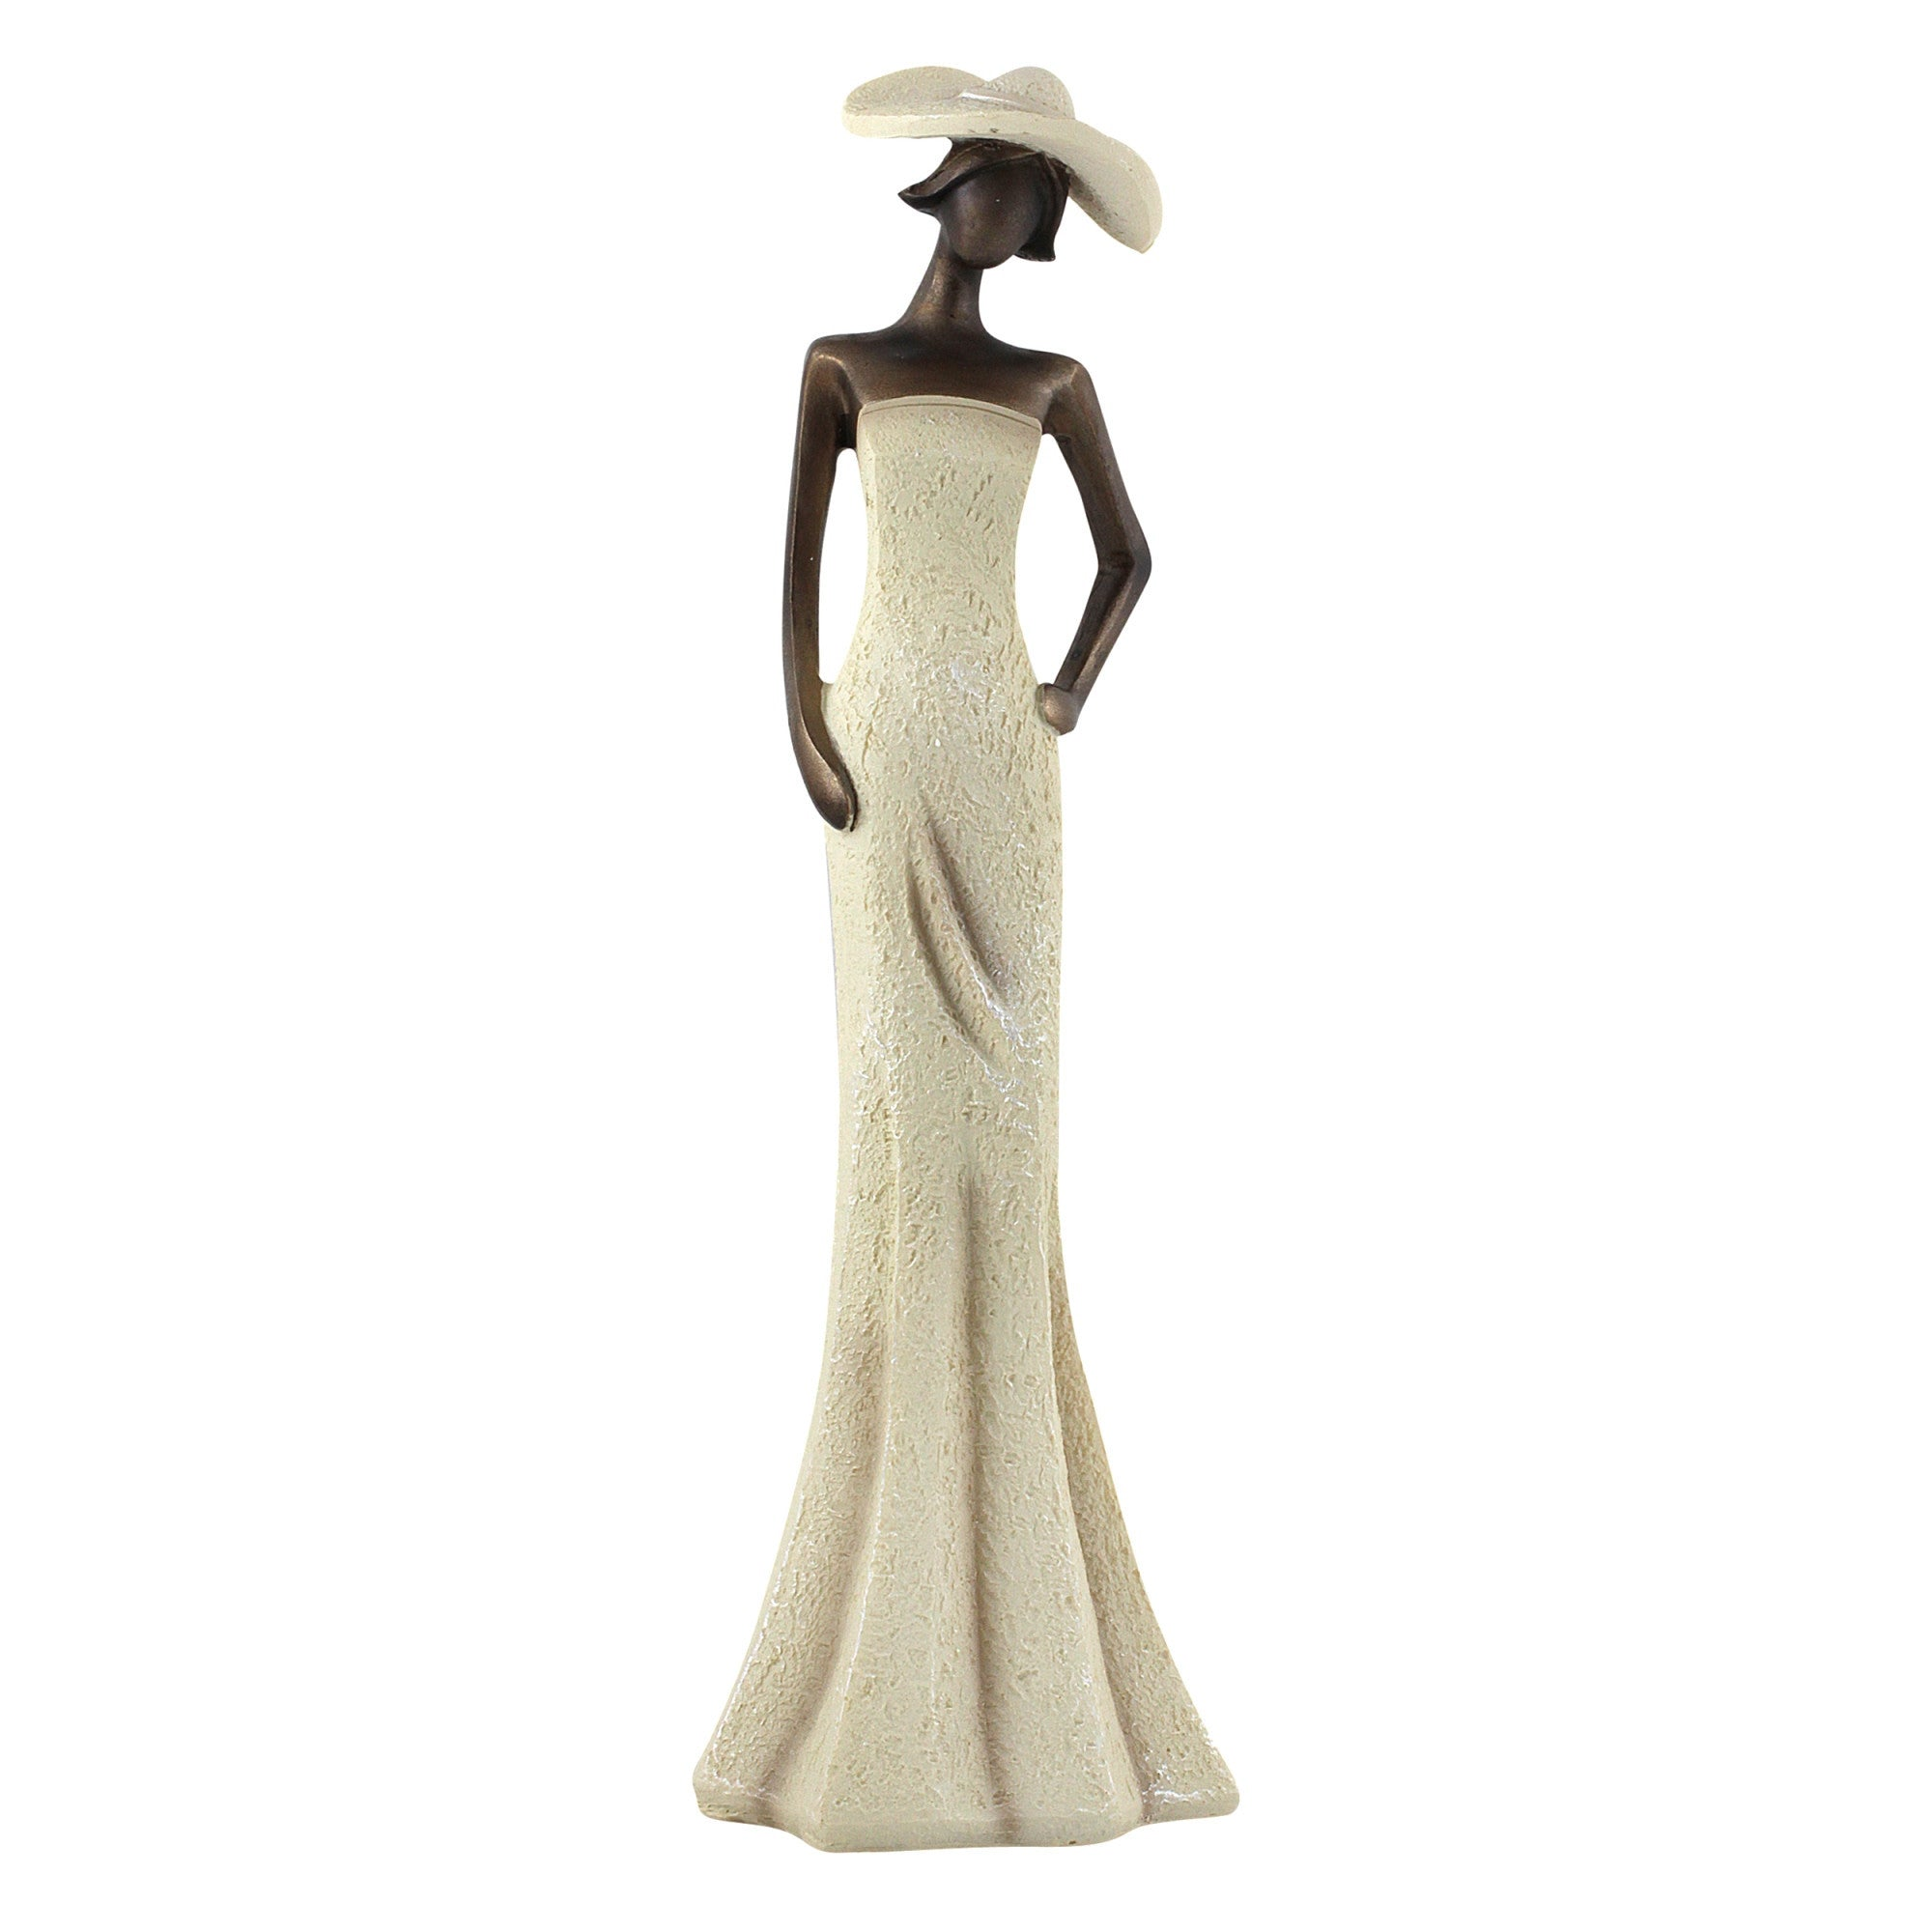 Out in the Sun Figurine: Virtuous Woman Collection